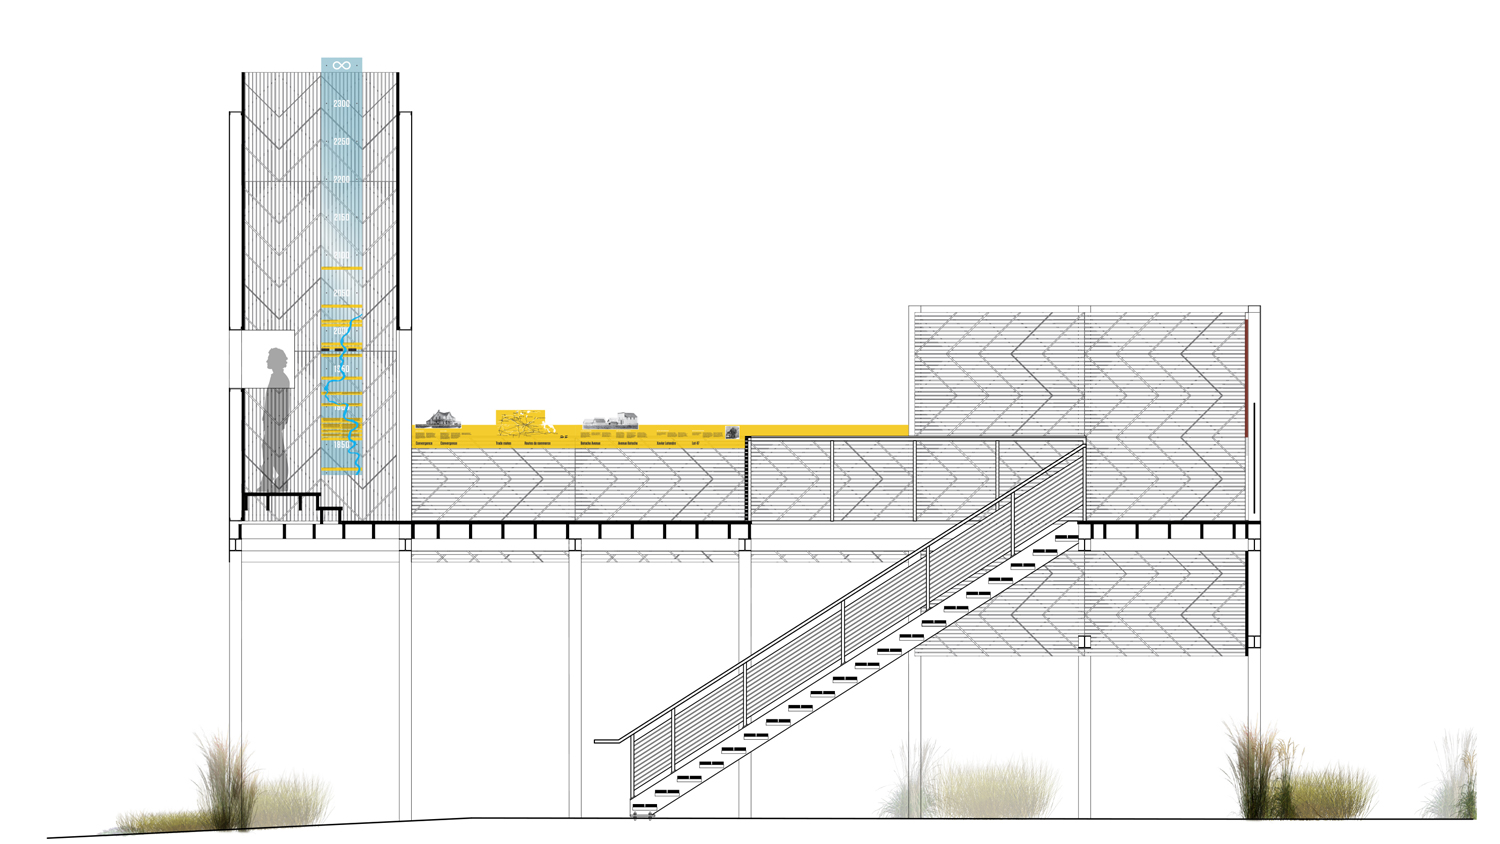 Section of the stage structure.